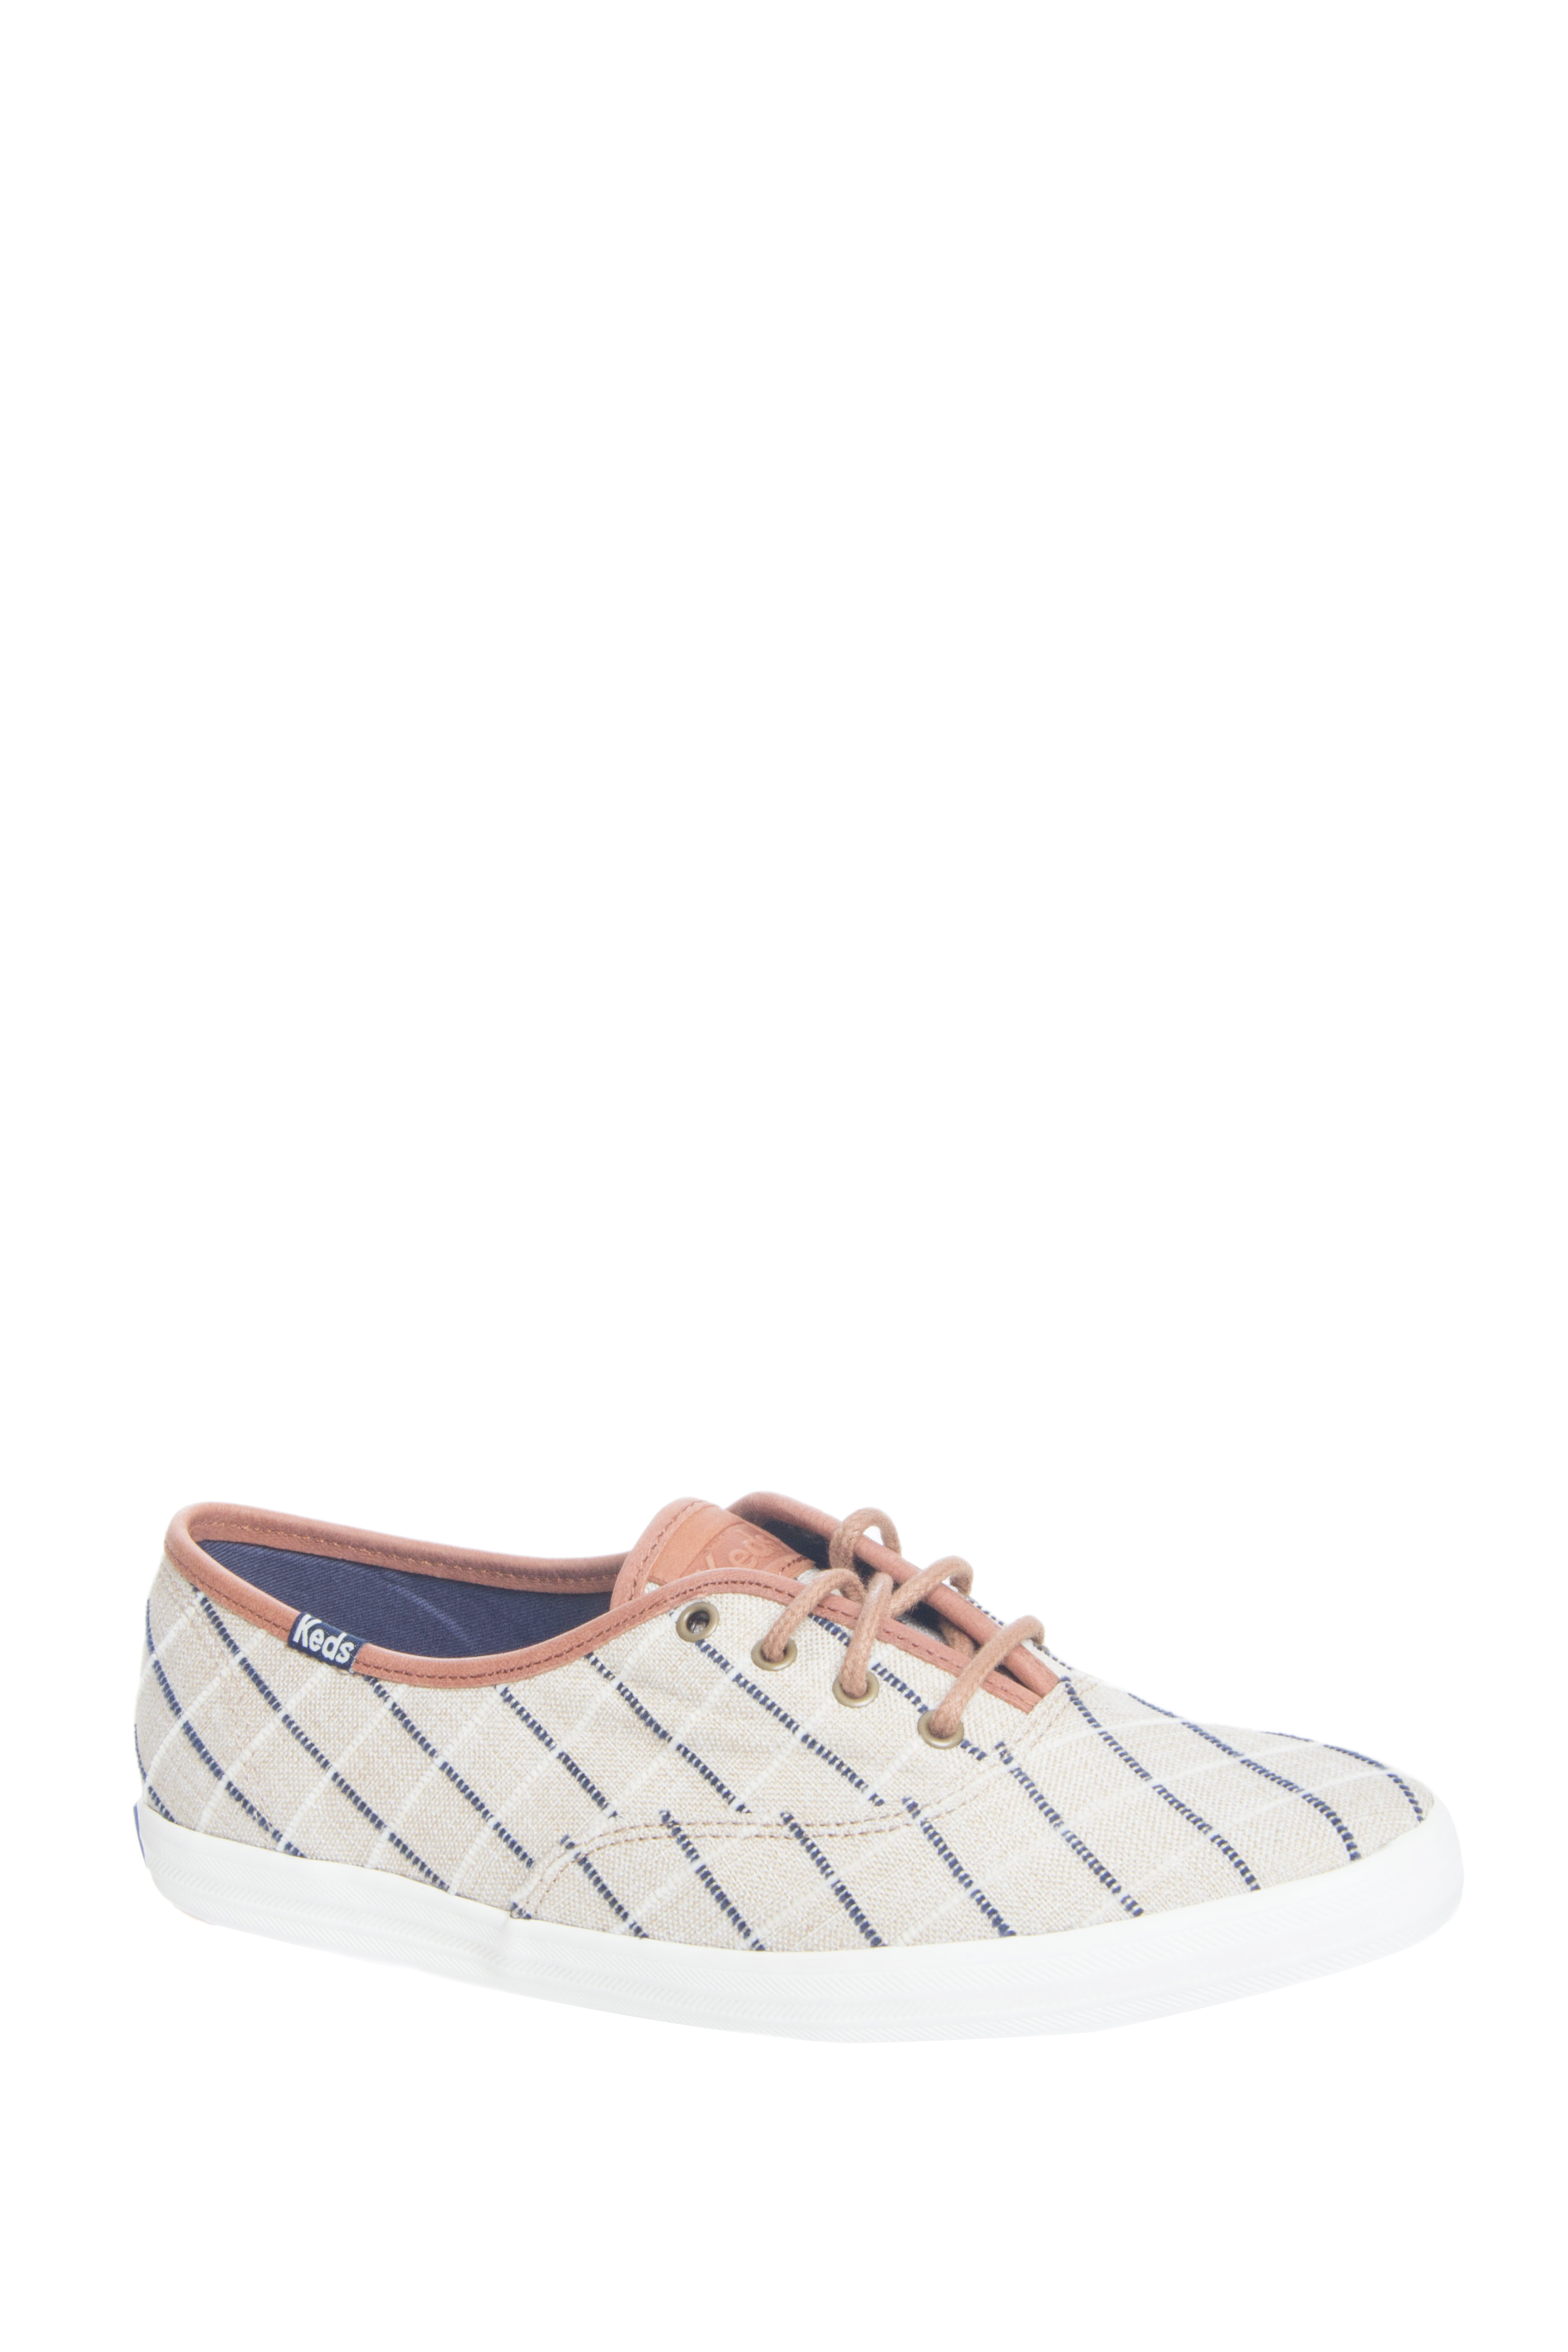 Keds Champion Windowpane Plaid Low Top Sneakers - Tan